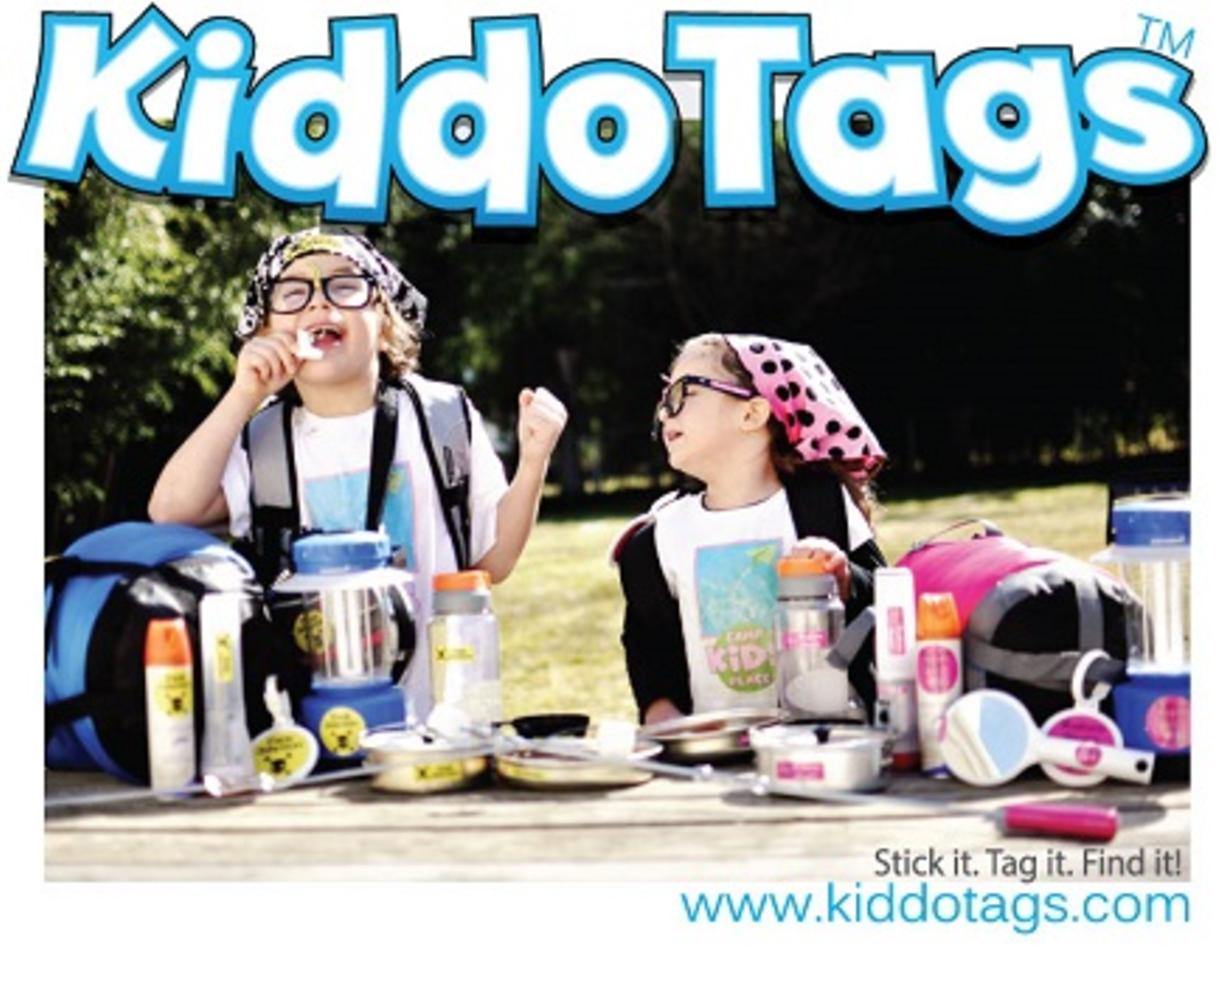 $20 for $40 Worth of Personalized Laminated Camp Labels from Kiddo Tags (50% Off - $40 Value)